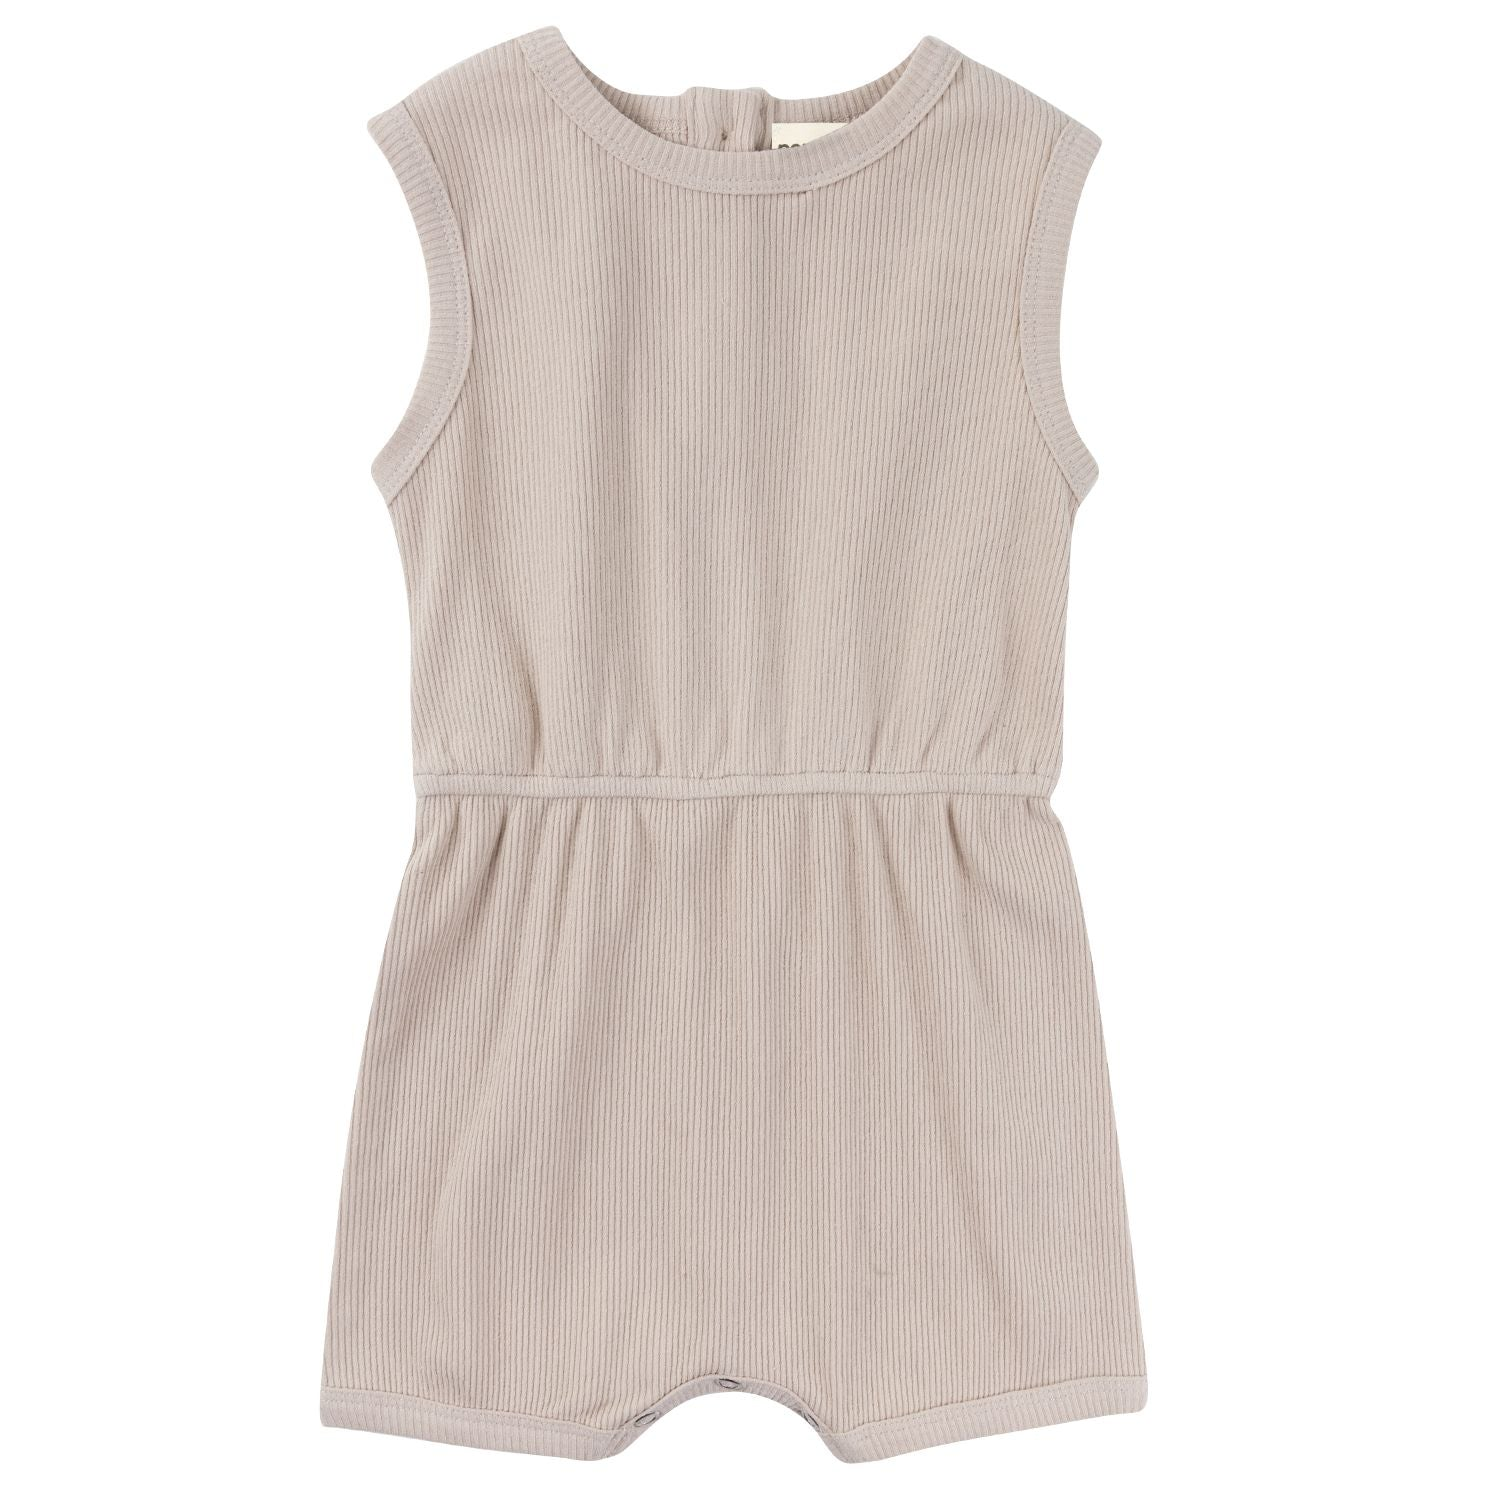 Ribbed Cotton Romper - Natural - (One Left)